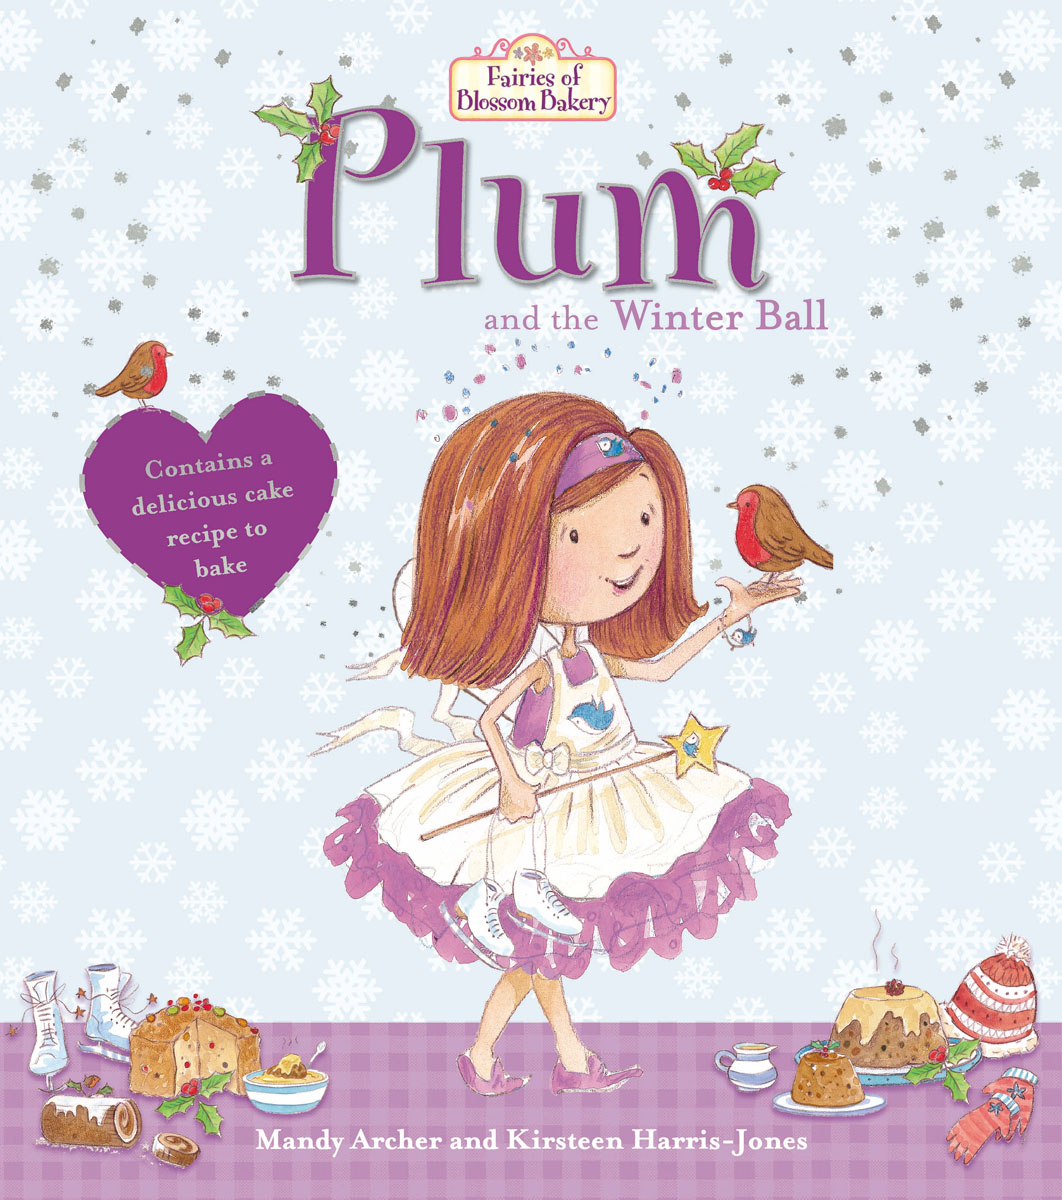 Fairies of Blossom Bakery: Plum and the Winter Ball cicely mary barker flower fairies of the winter